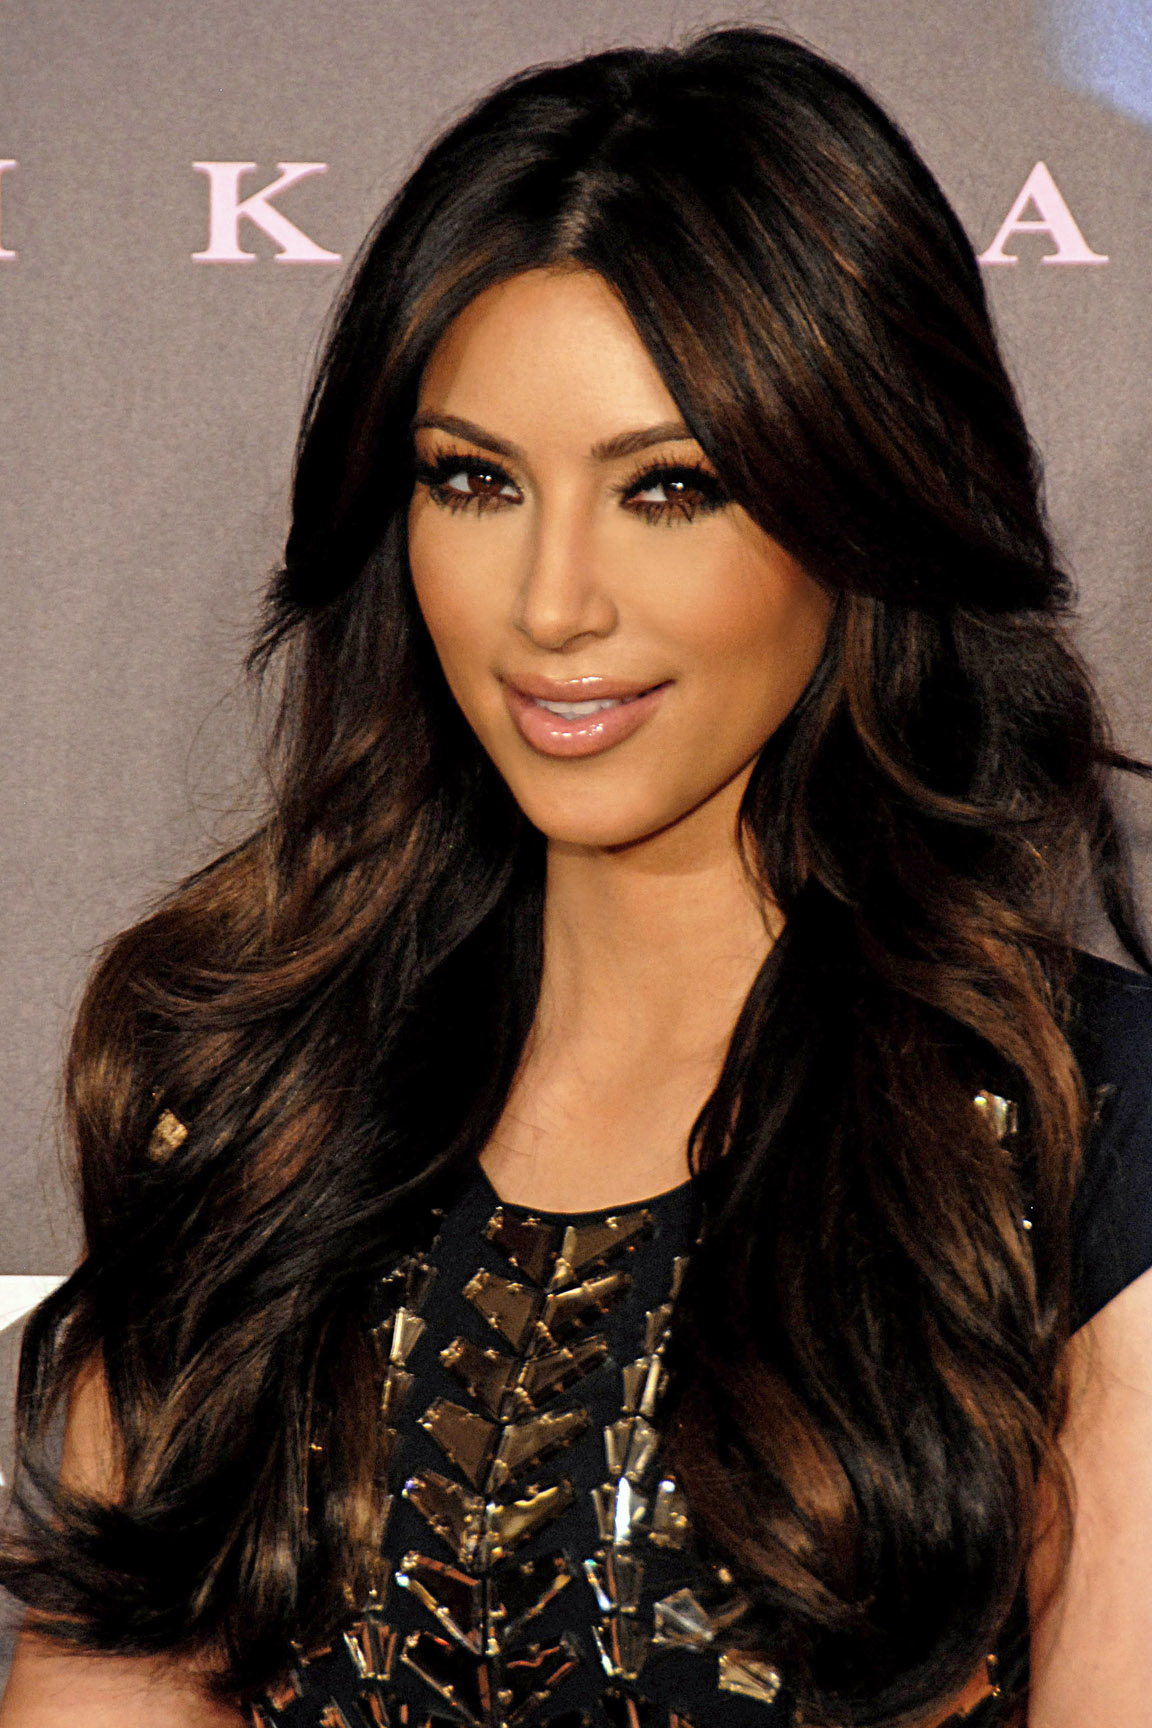 File:Kim Kardashian 2011    Wikipedia, The Free Encyclopedia Wallpaper